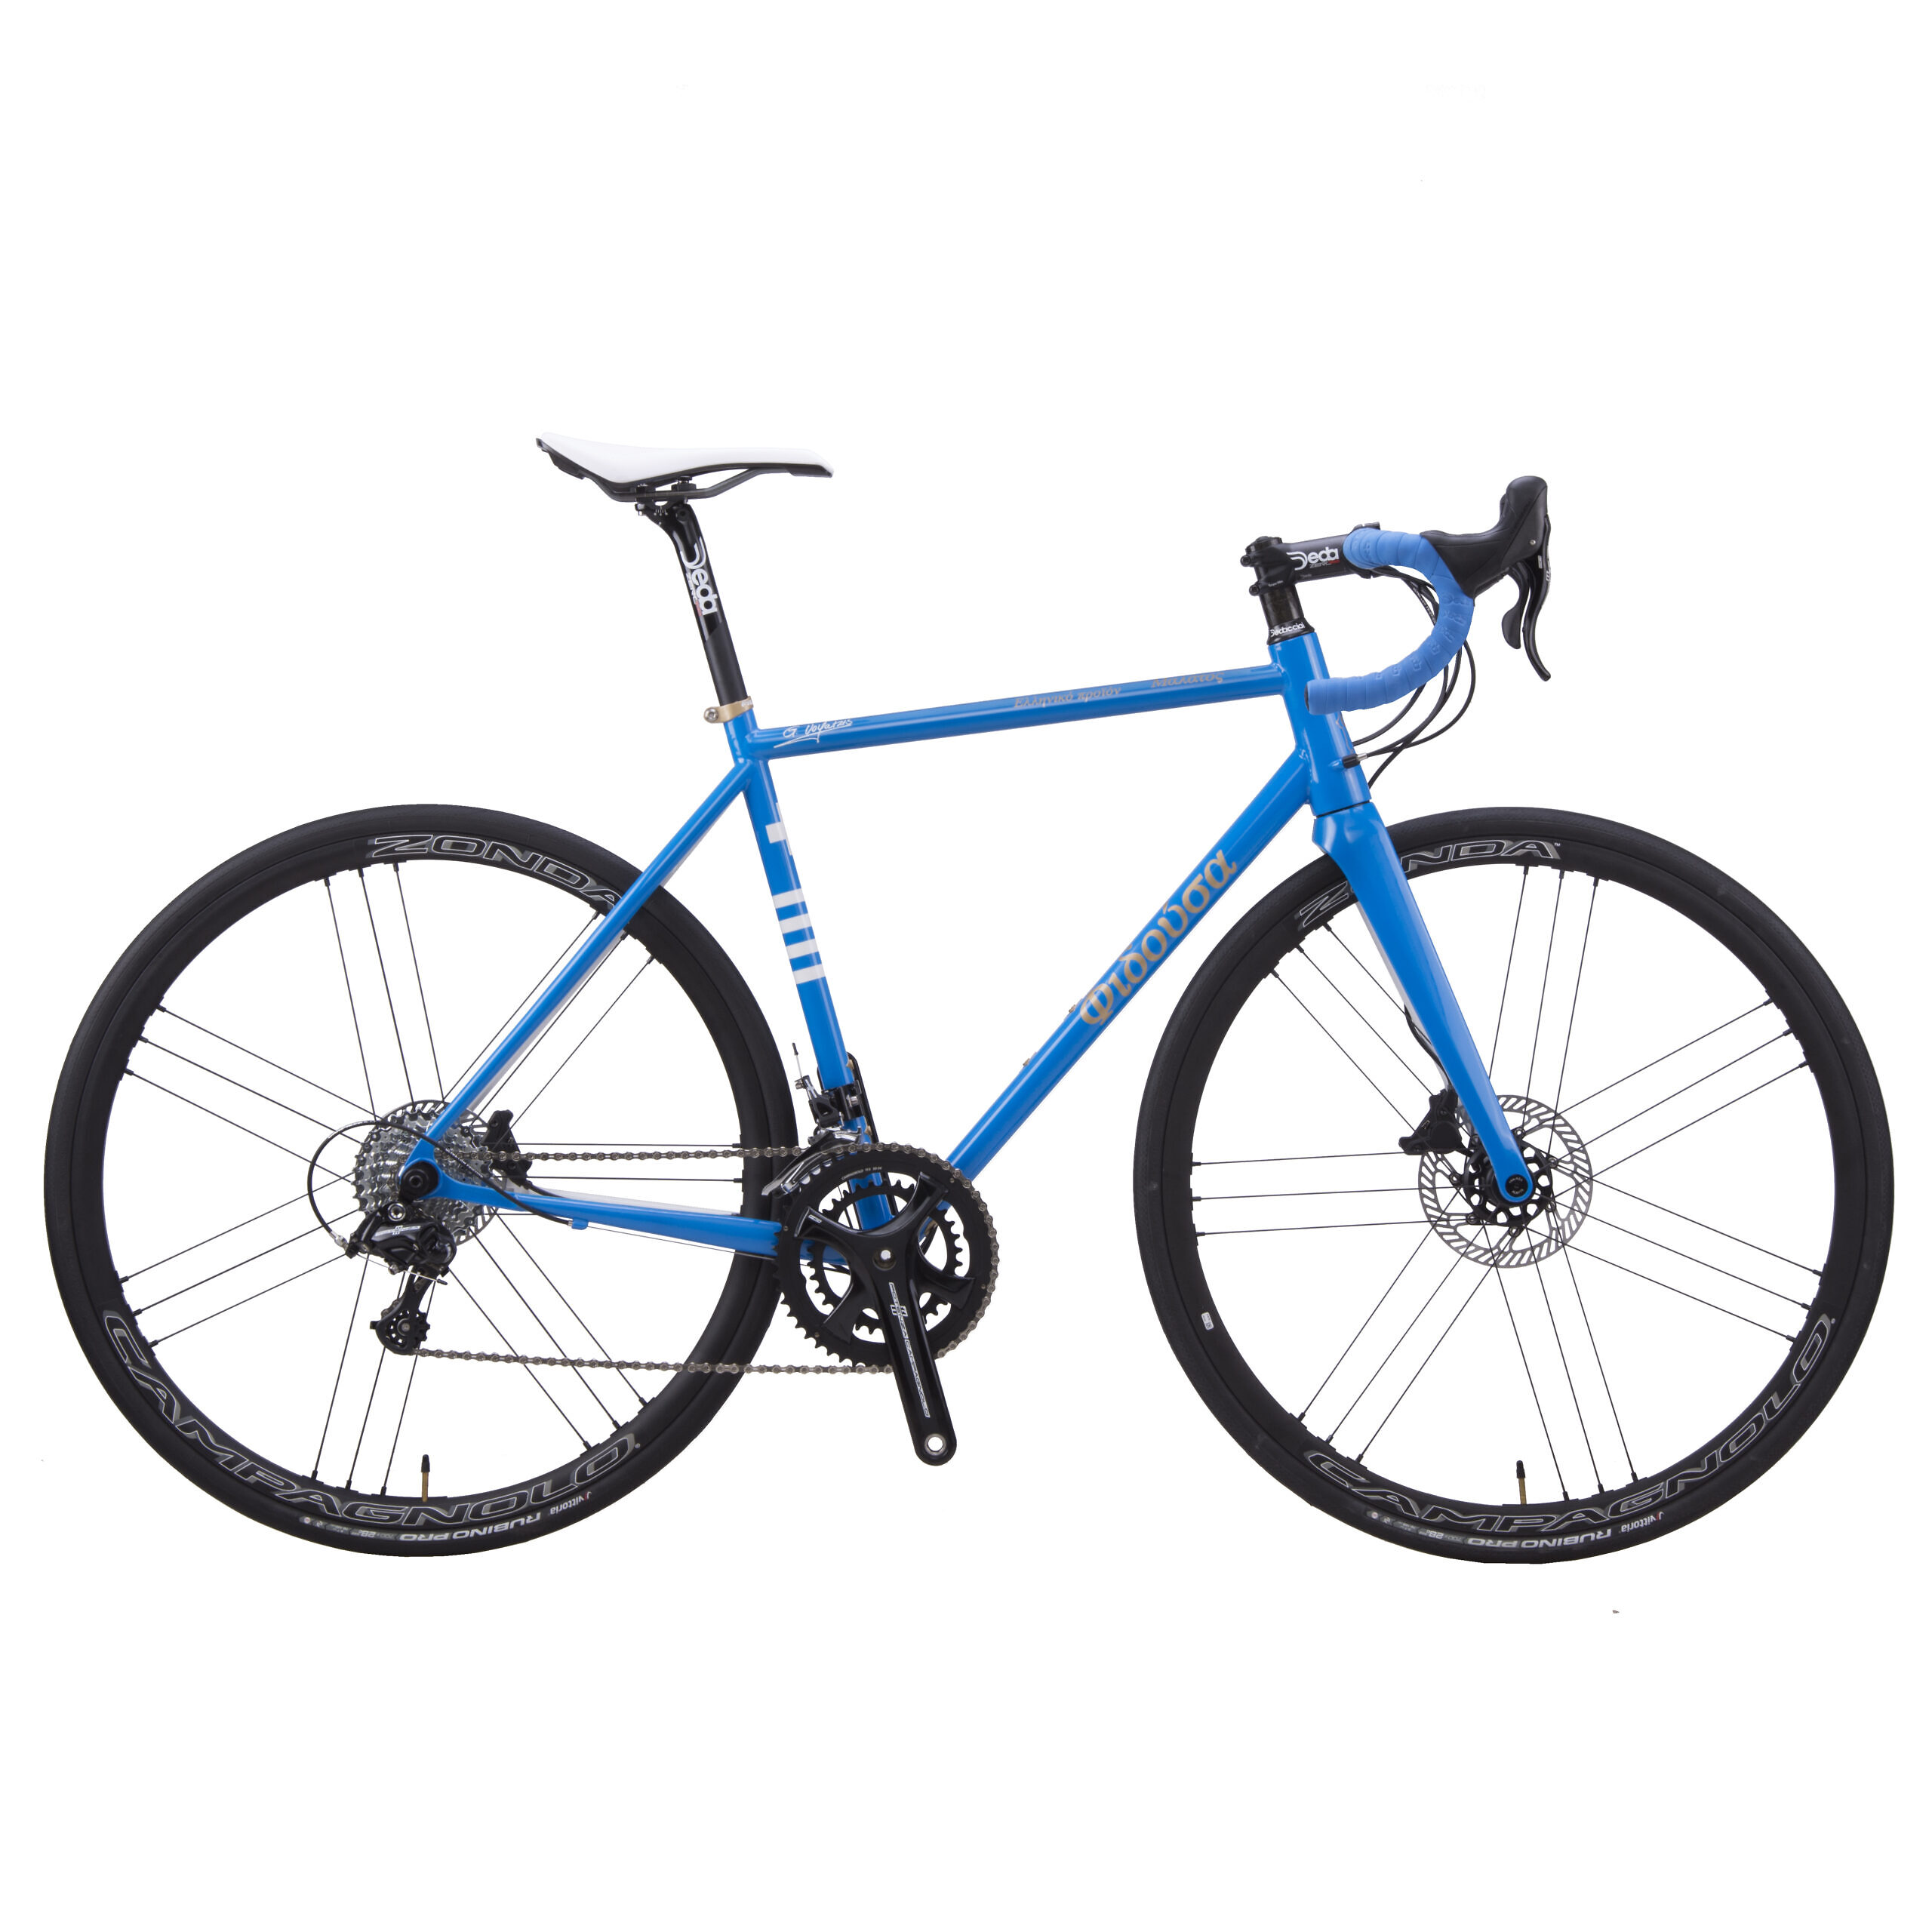 BARTEK-land-clear-scaled Bartek's Columbus Spirit Steel Road Disc Bicycle